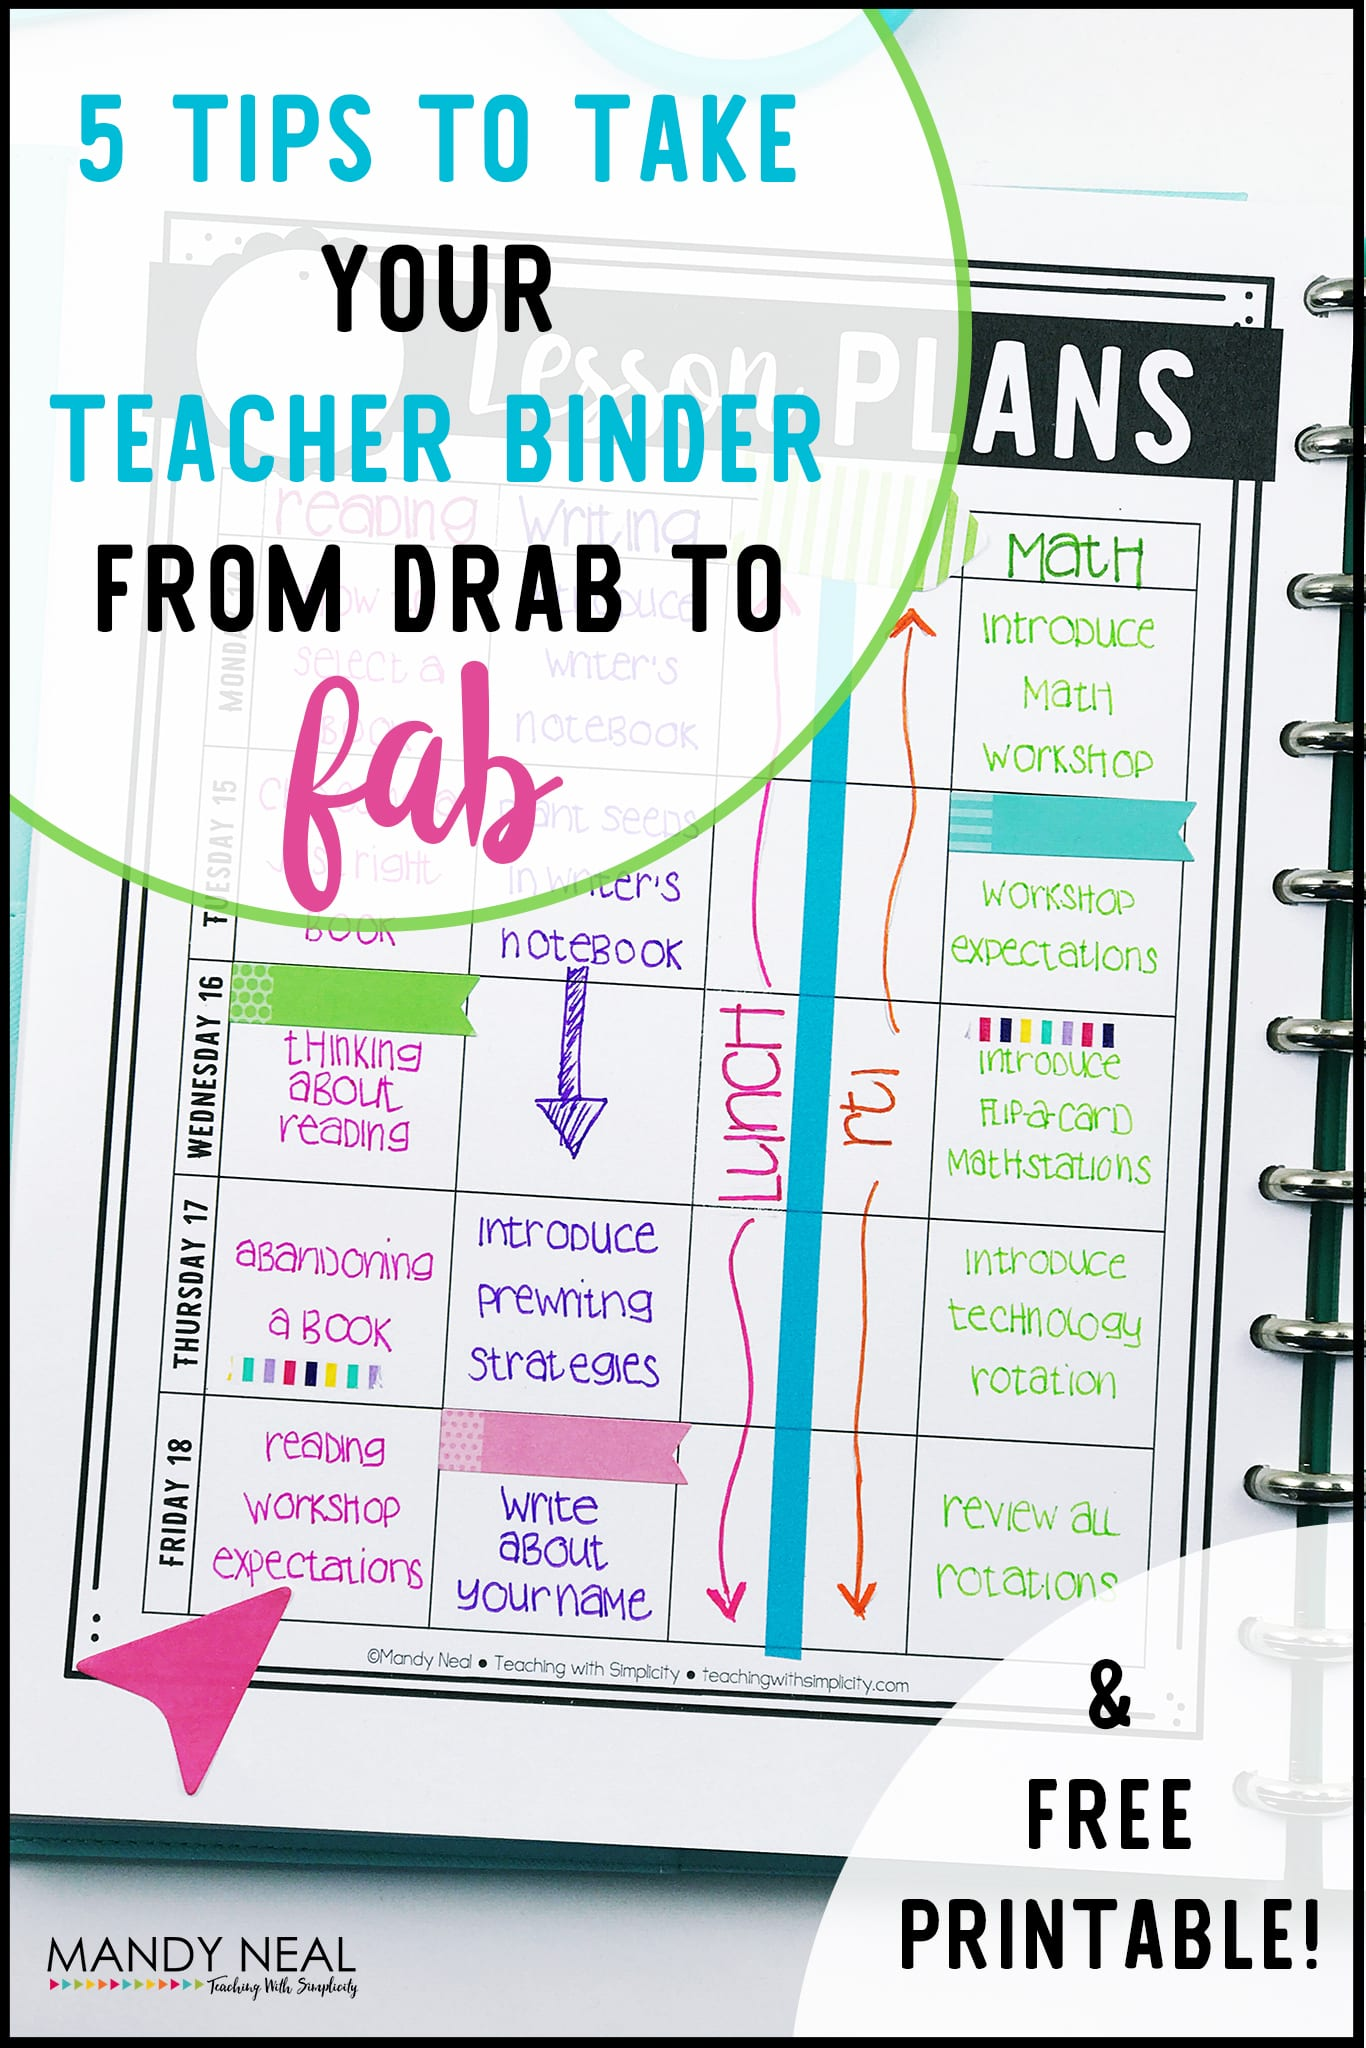 , 5 Tips to Take Your Teacher Binder from Drab to Fab